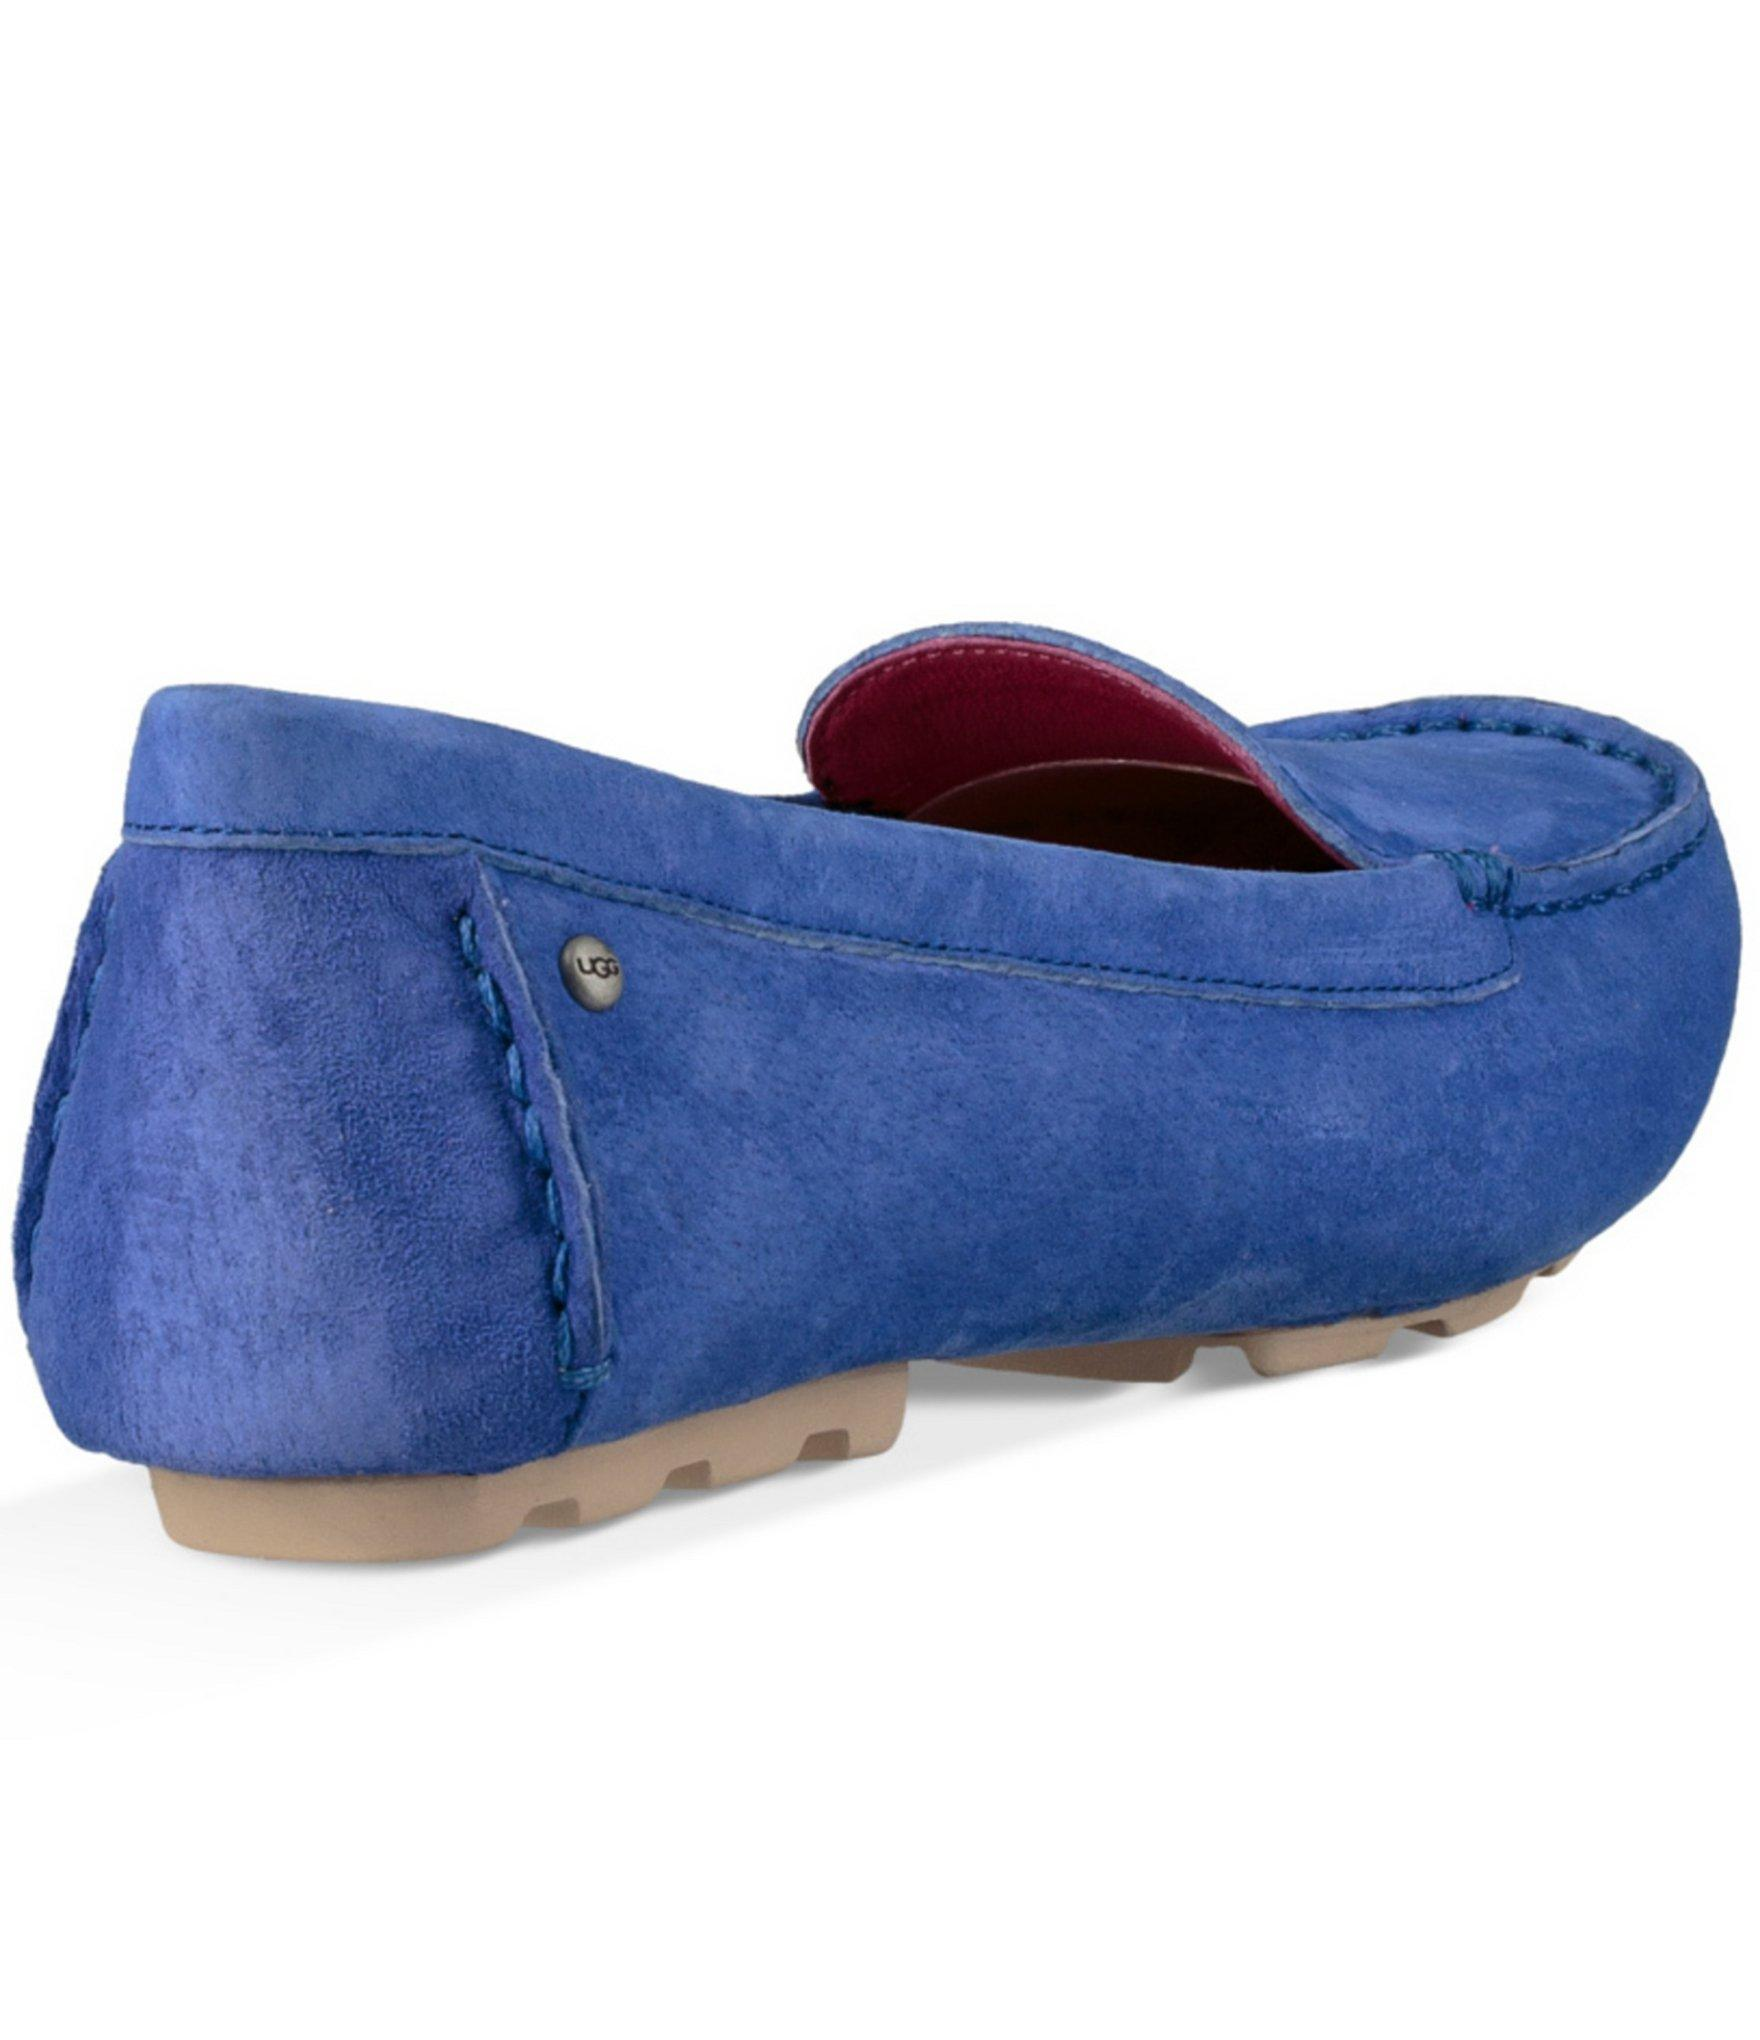 ee53511934b Lyst - UGG ® Milana Loafers in Blue